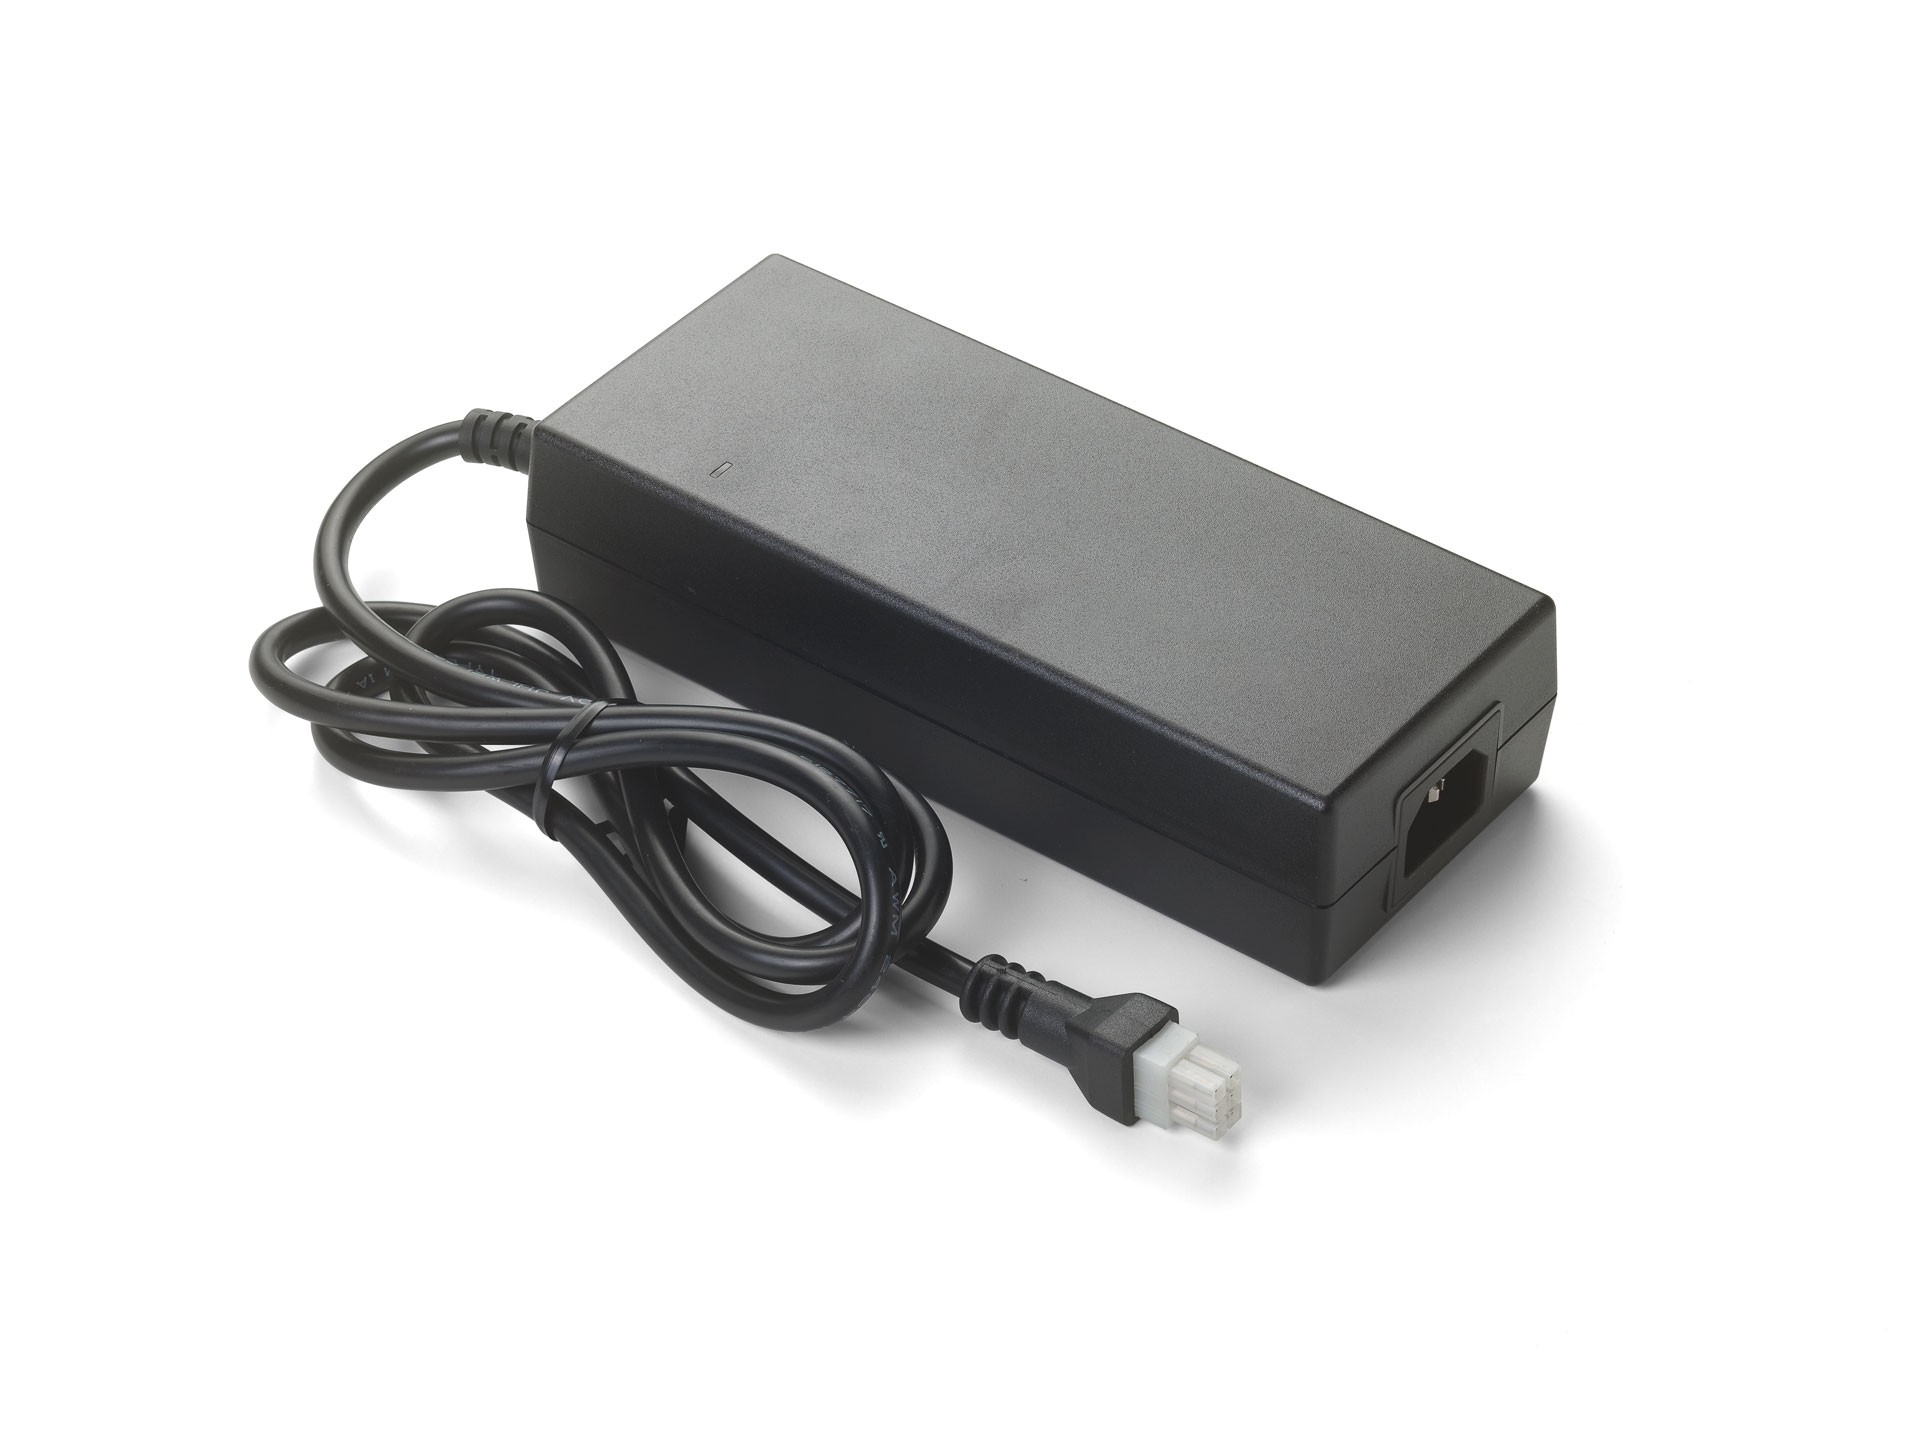 AKiTiO 150W 6-Pin Power Supply for Thunder3 Dock Pro, Thunder3 Quad, and Node Duo, AKTPWRT3D